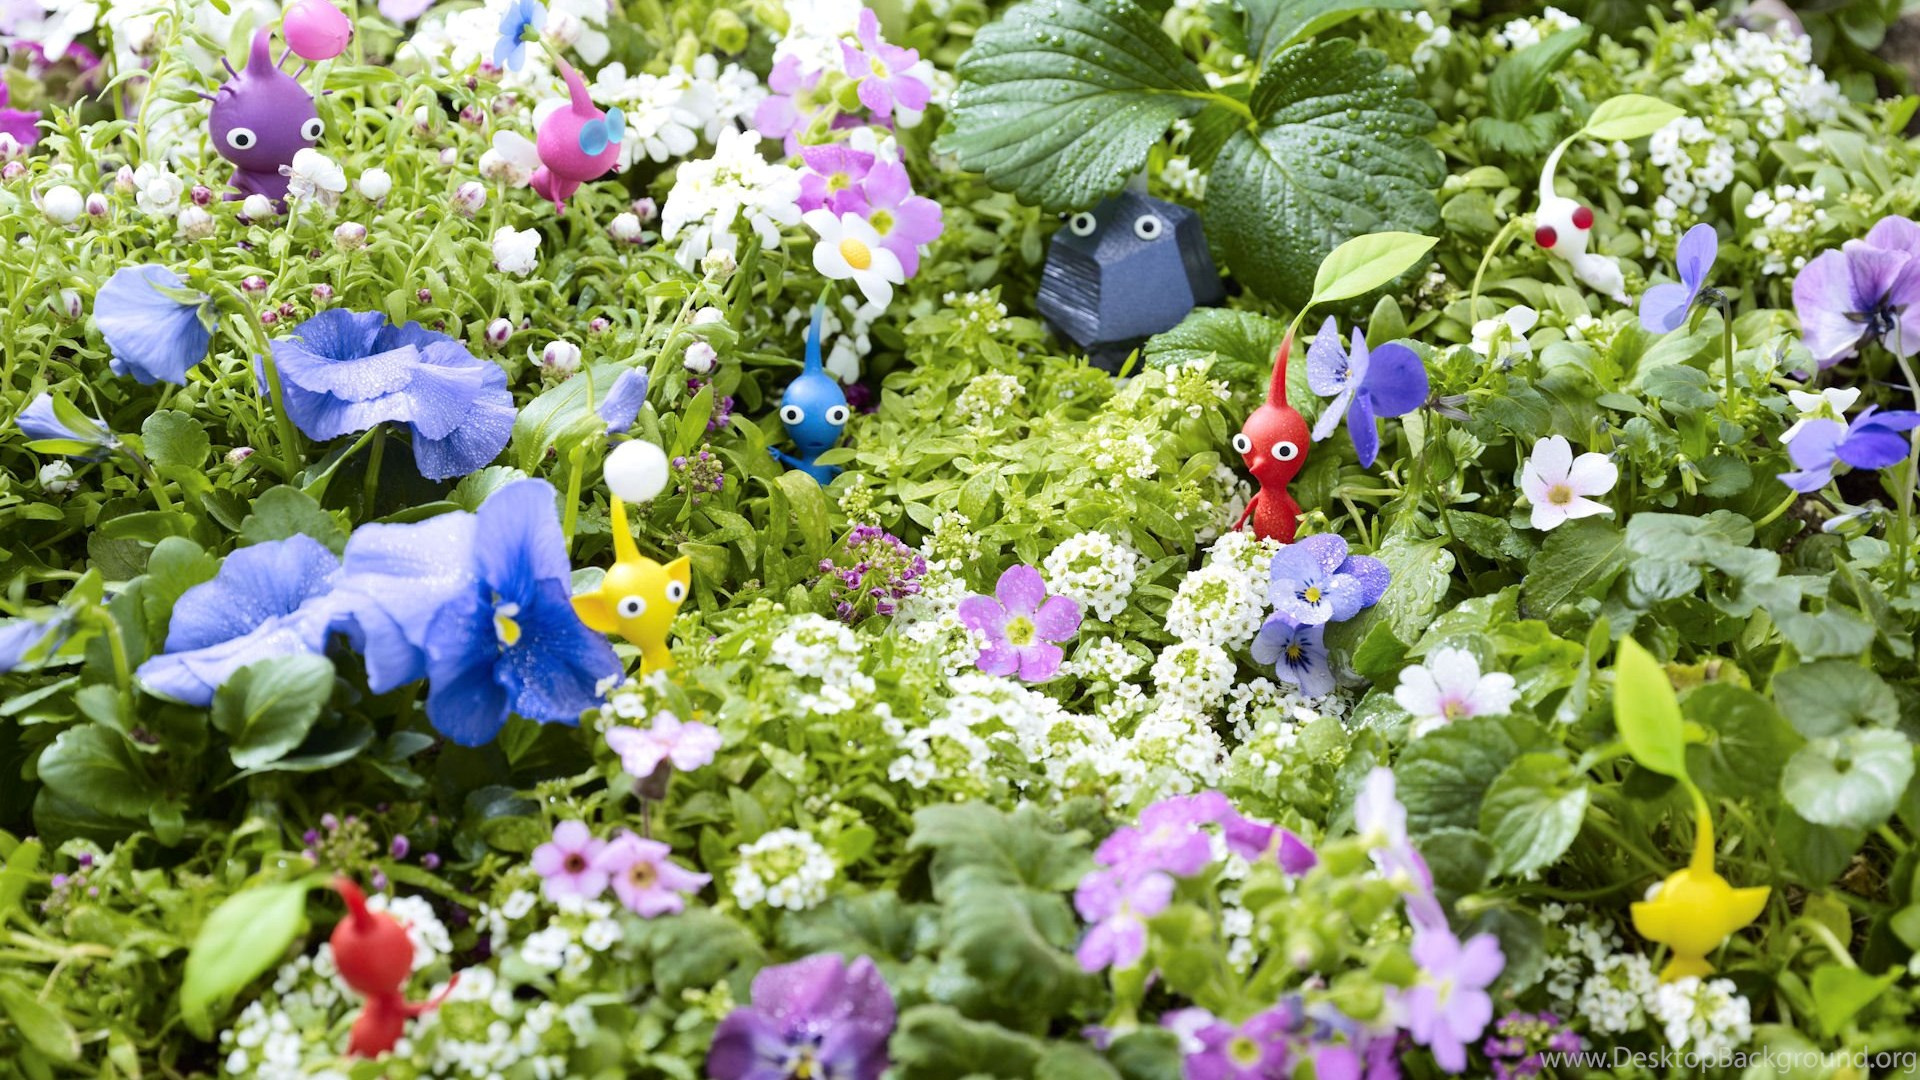 Pikmin 3 HD Wallpapers and Background Images   stmednet 1920x1080